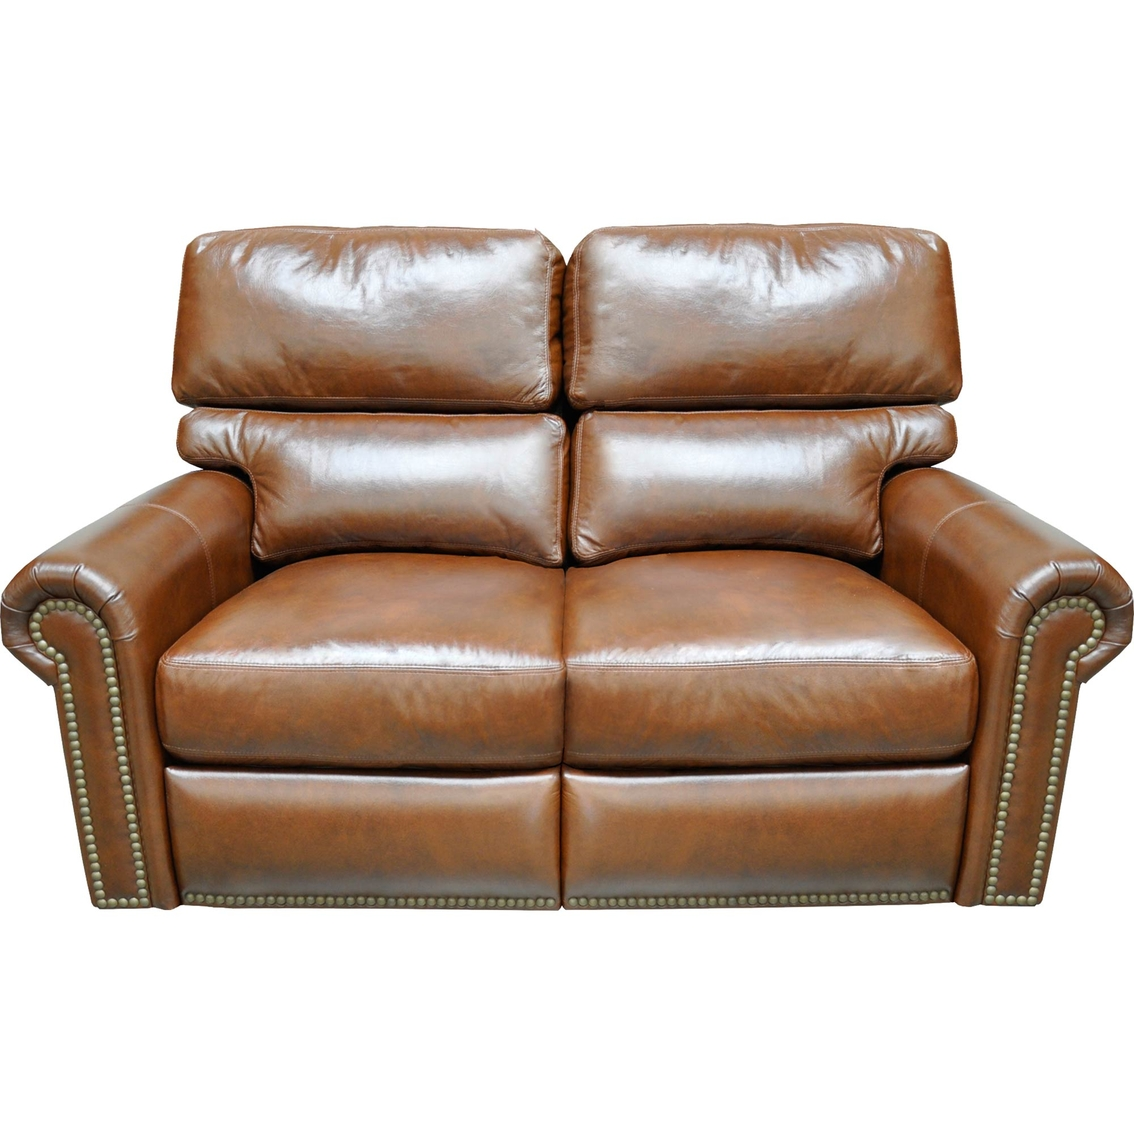 Pleasant Omnia Italian Designs Carlton Reclining Loveseat Chairs Caraccident5 Cool Chair Designs And Ideas Caraccident5Info